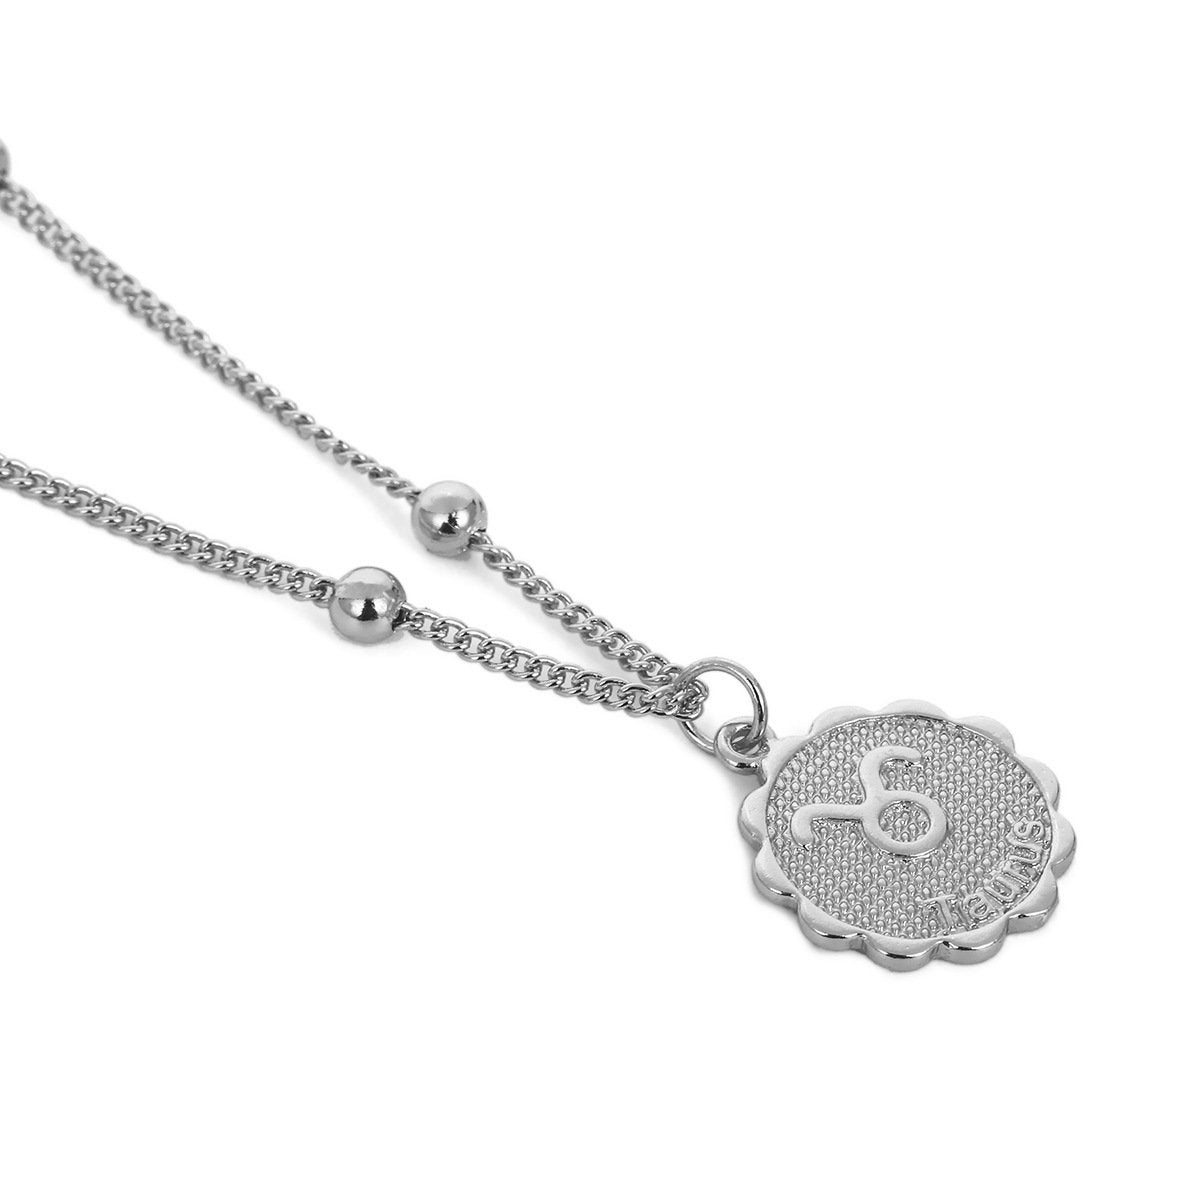 Taurus zocoin necklace